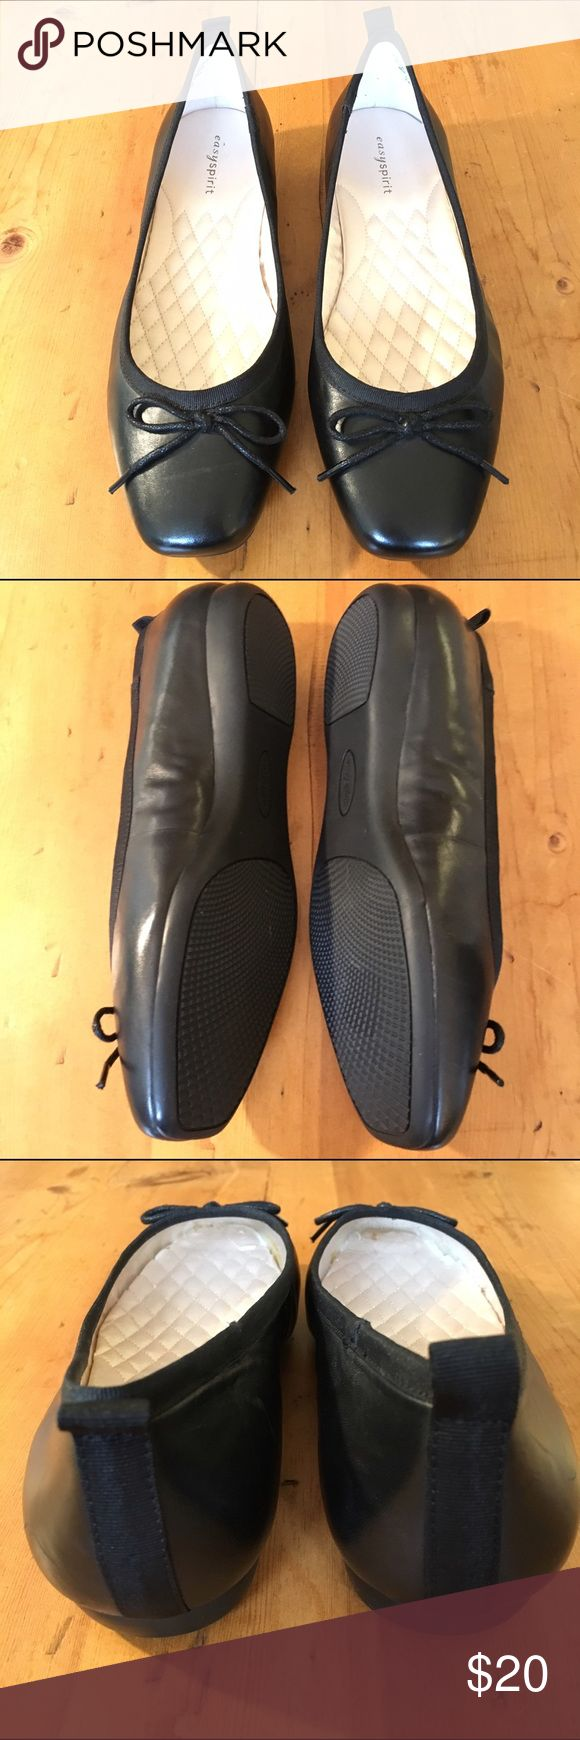 Easy Spirit Black Flats Never worn size 8wide leather classic and a great basic dress up or down Easy Spirit Shoes Flats & Loafers